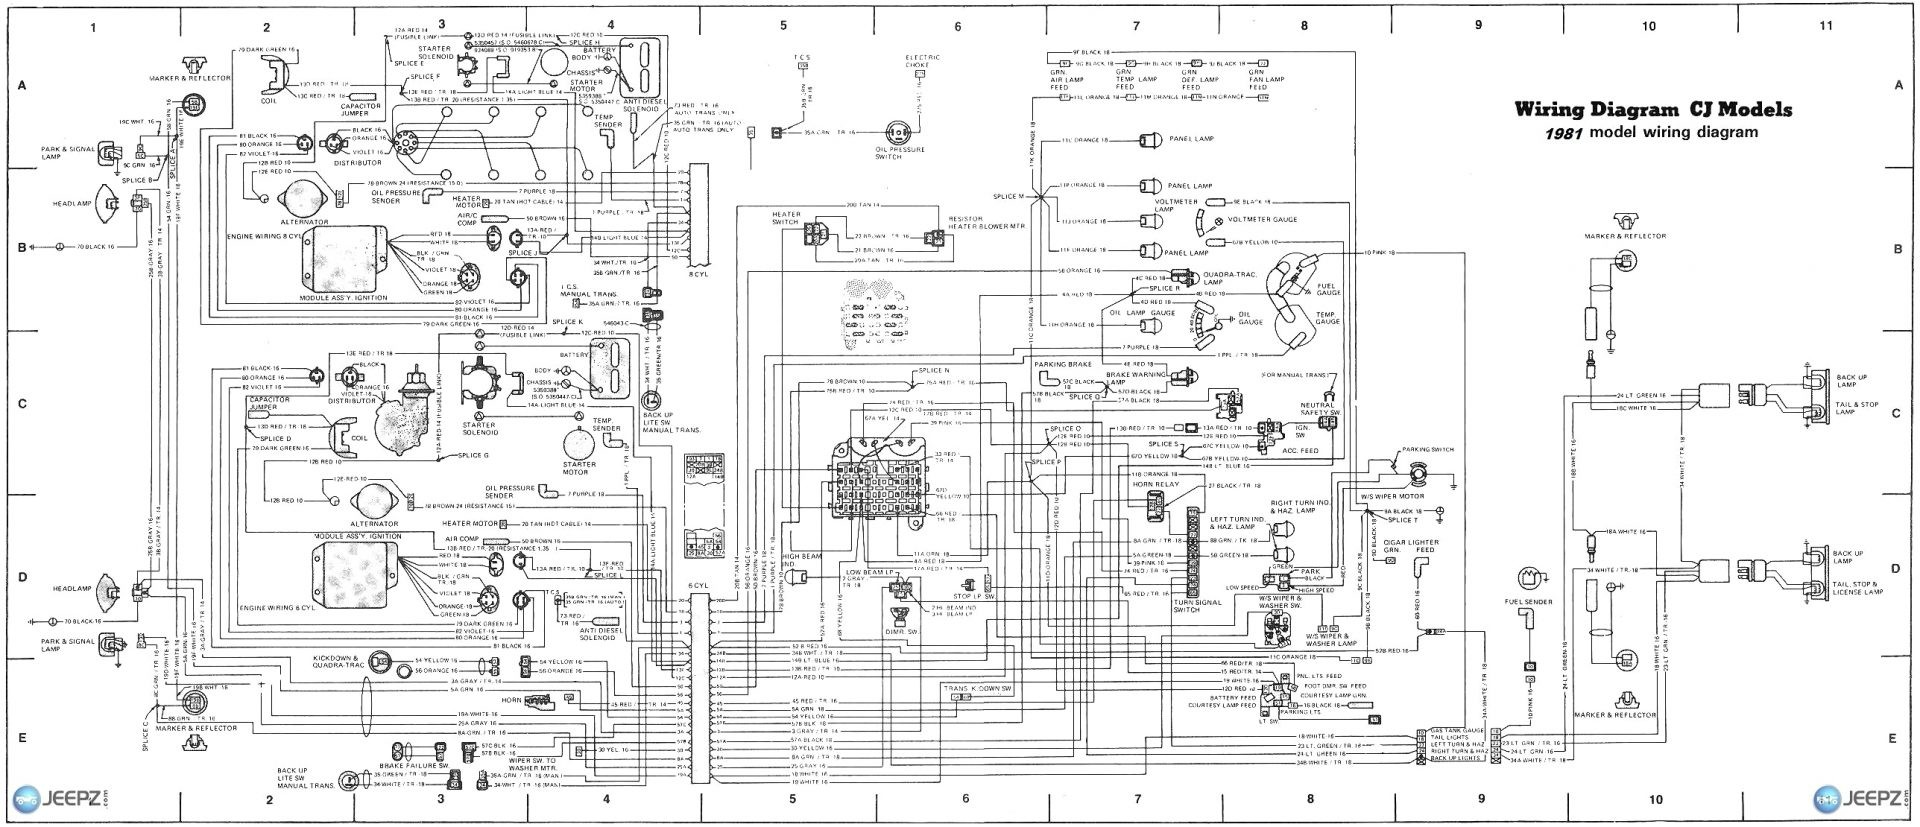 David Clark Wiring Diagram Helicopter. . Wiring Diagram on